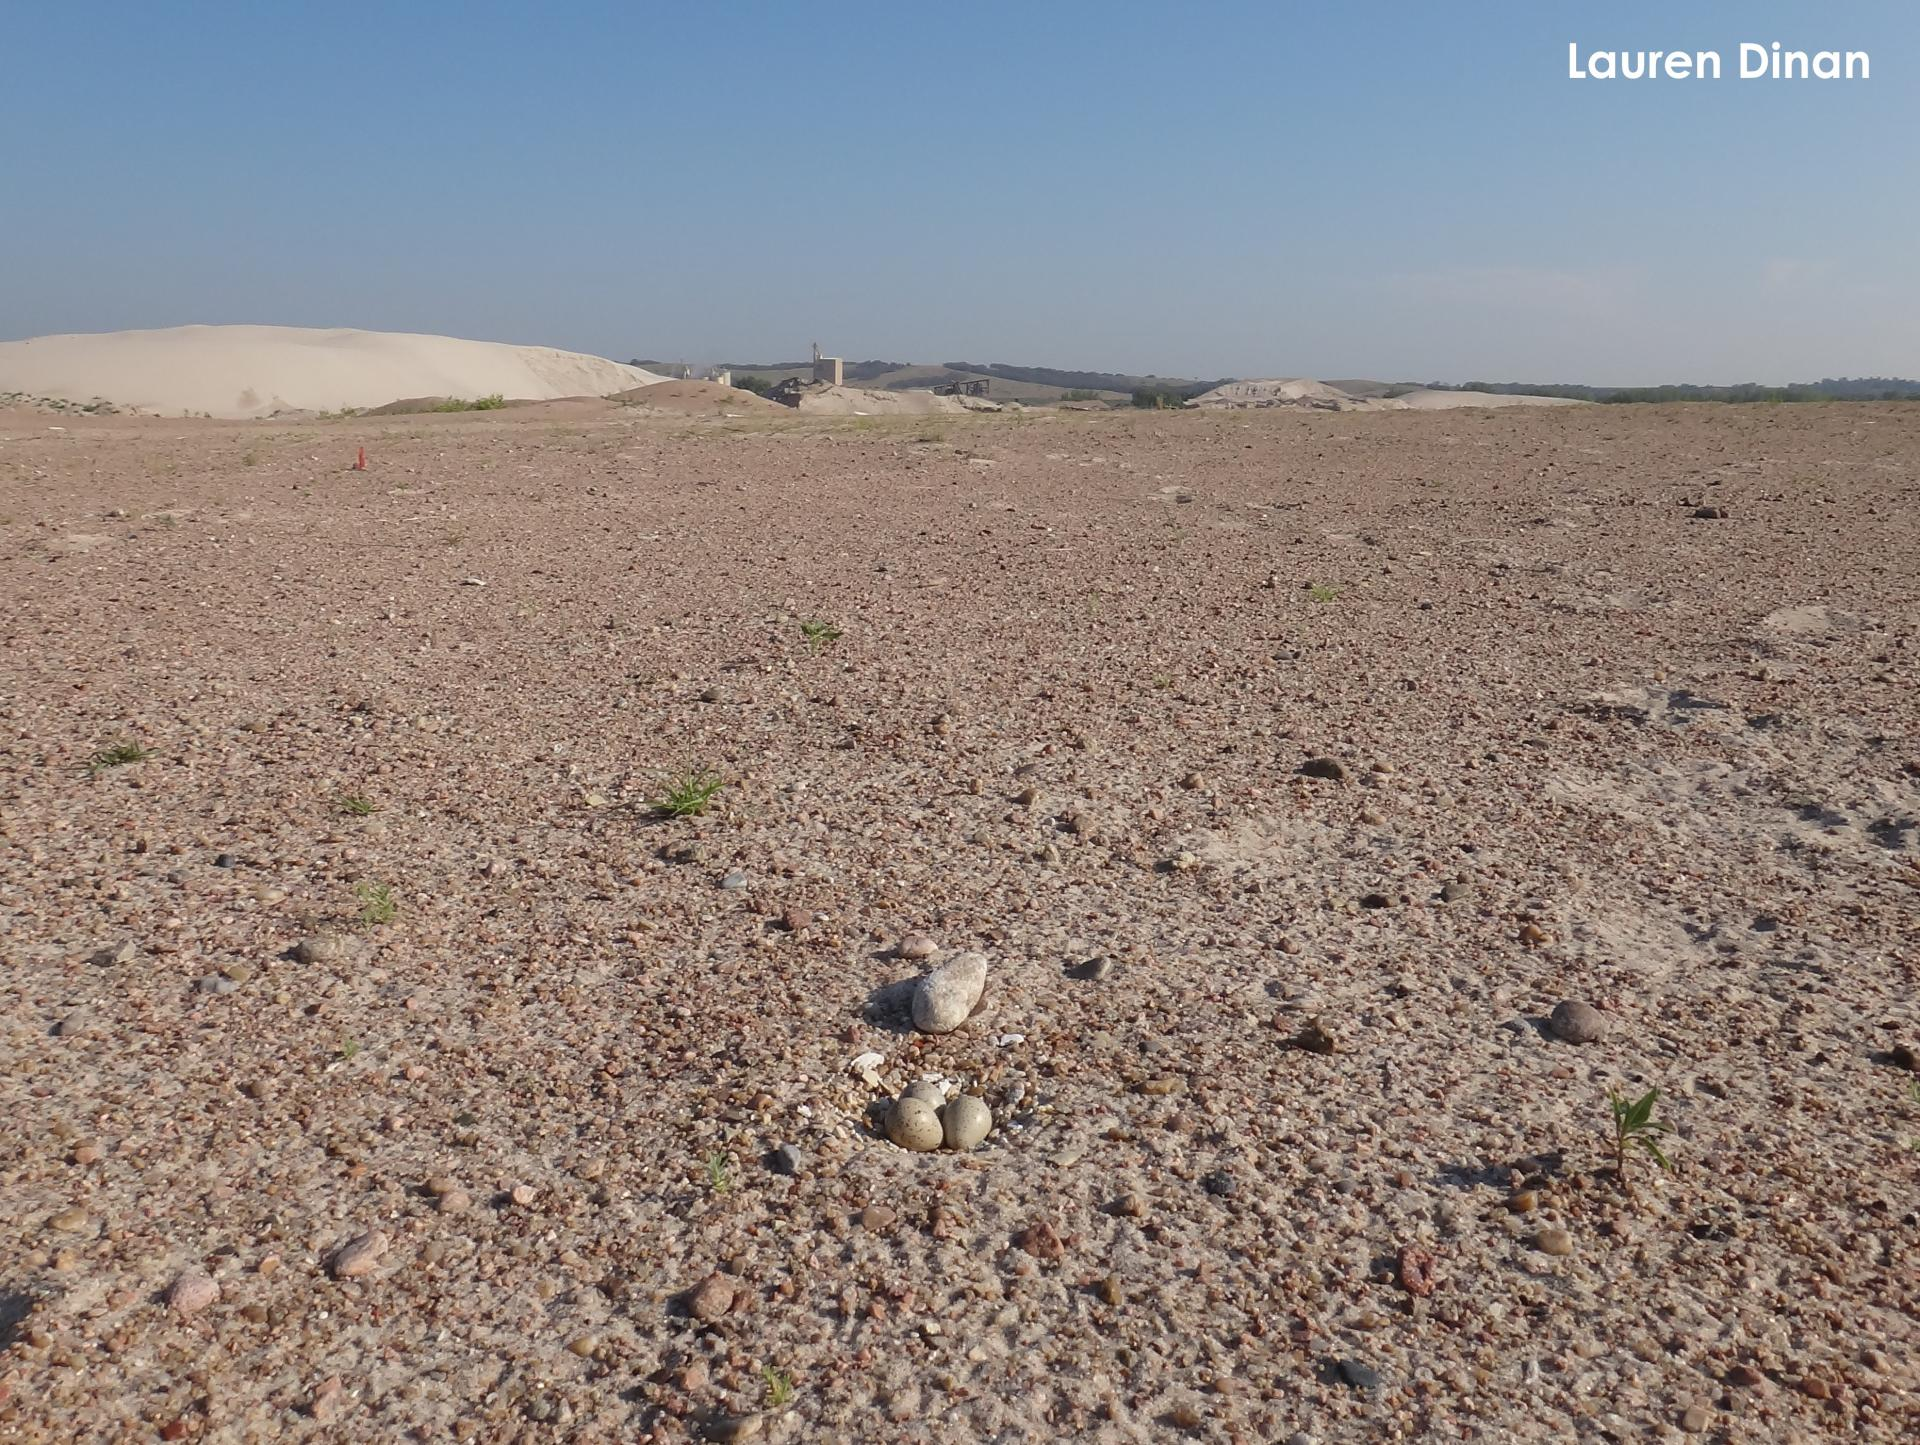 A plover nest at a sand and gravel mine